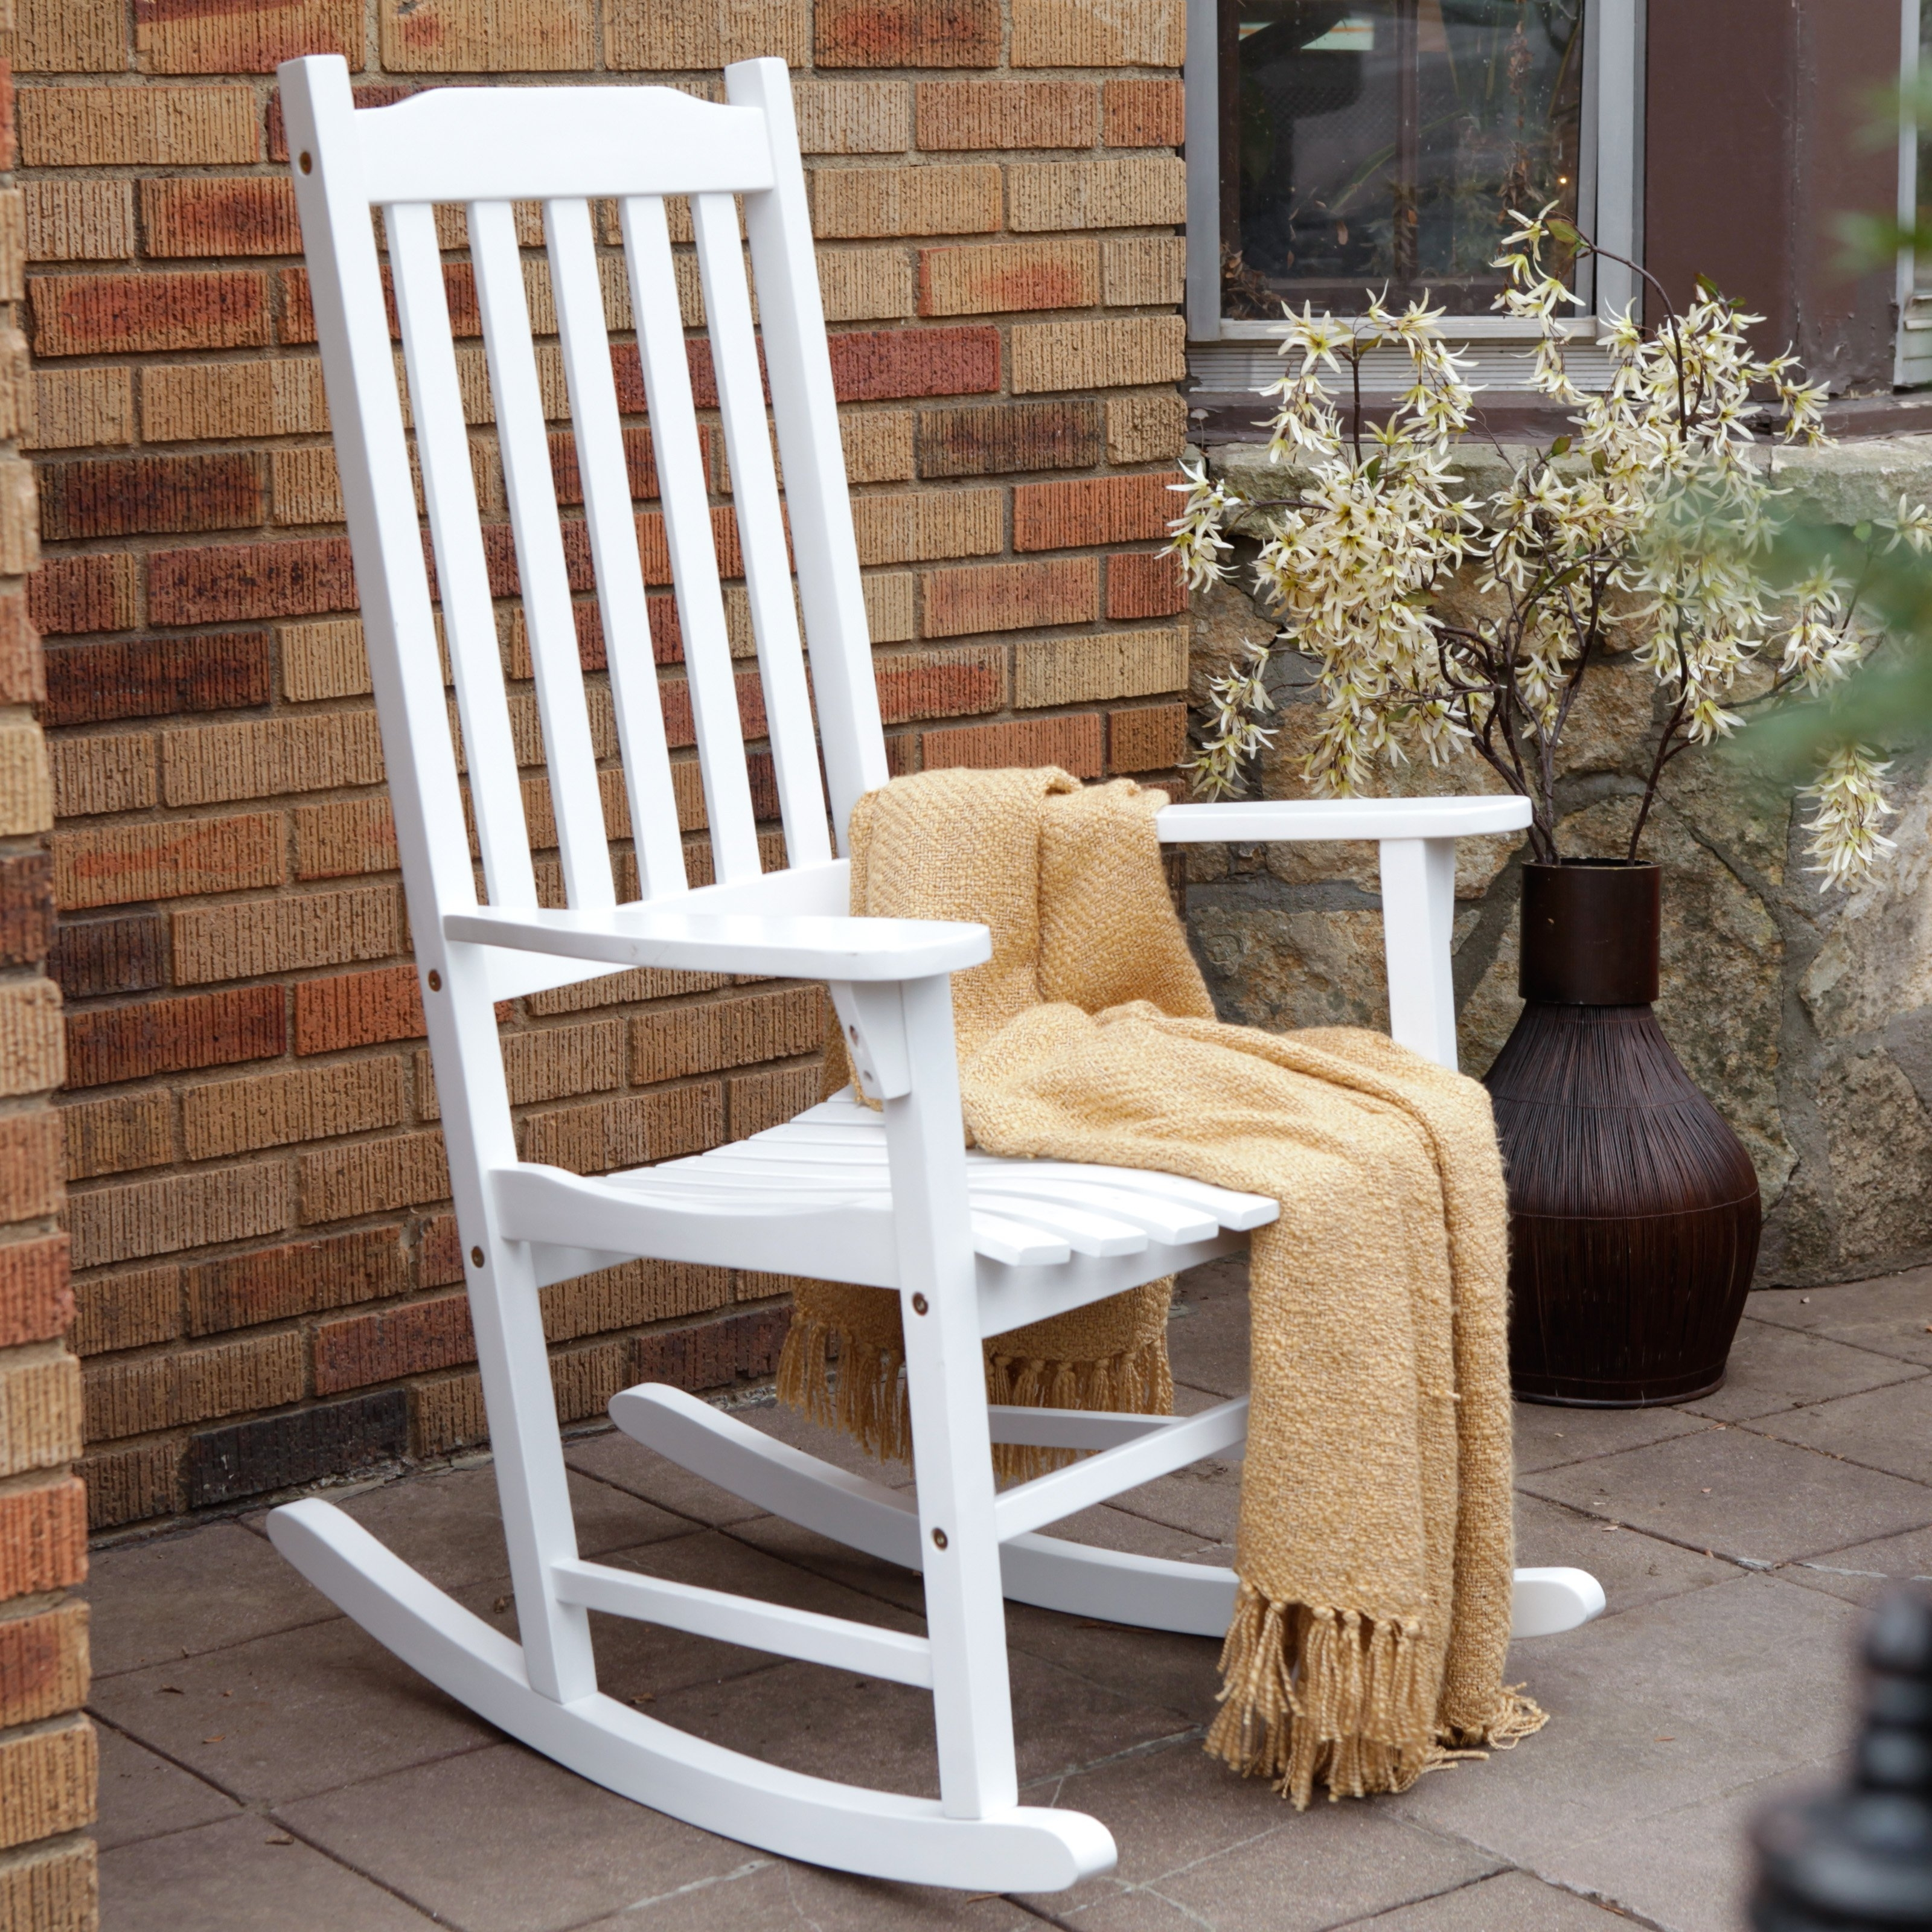 Outdoor Rocking Chairs Intended For Most Current Coral Coast Indoor/outdoor Mission Slat Rocking Chair – White (View 3 of 20)